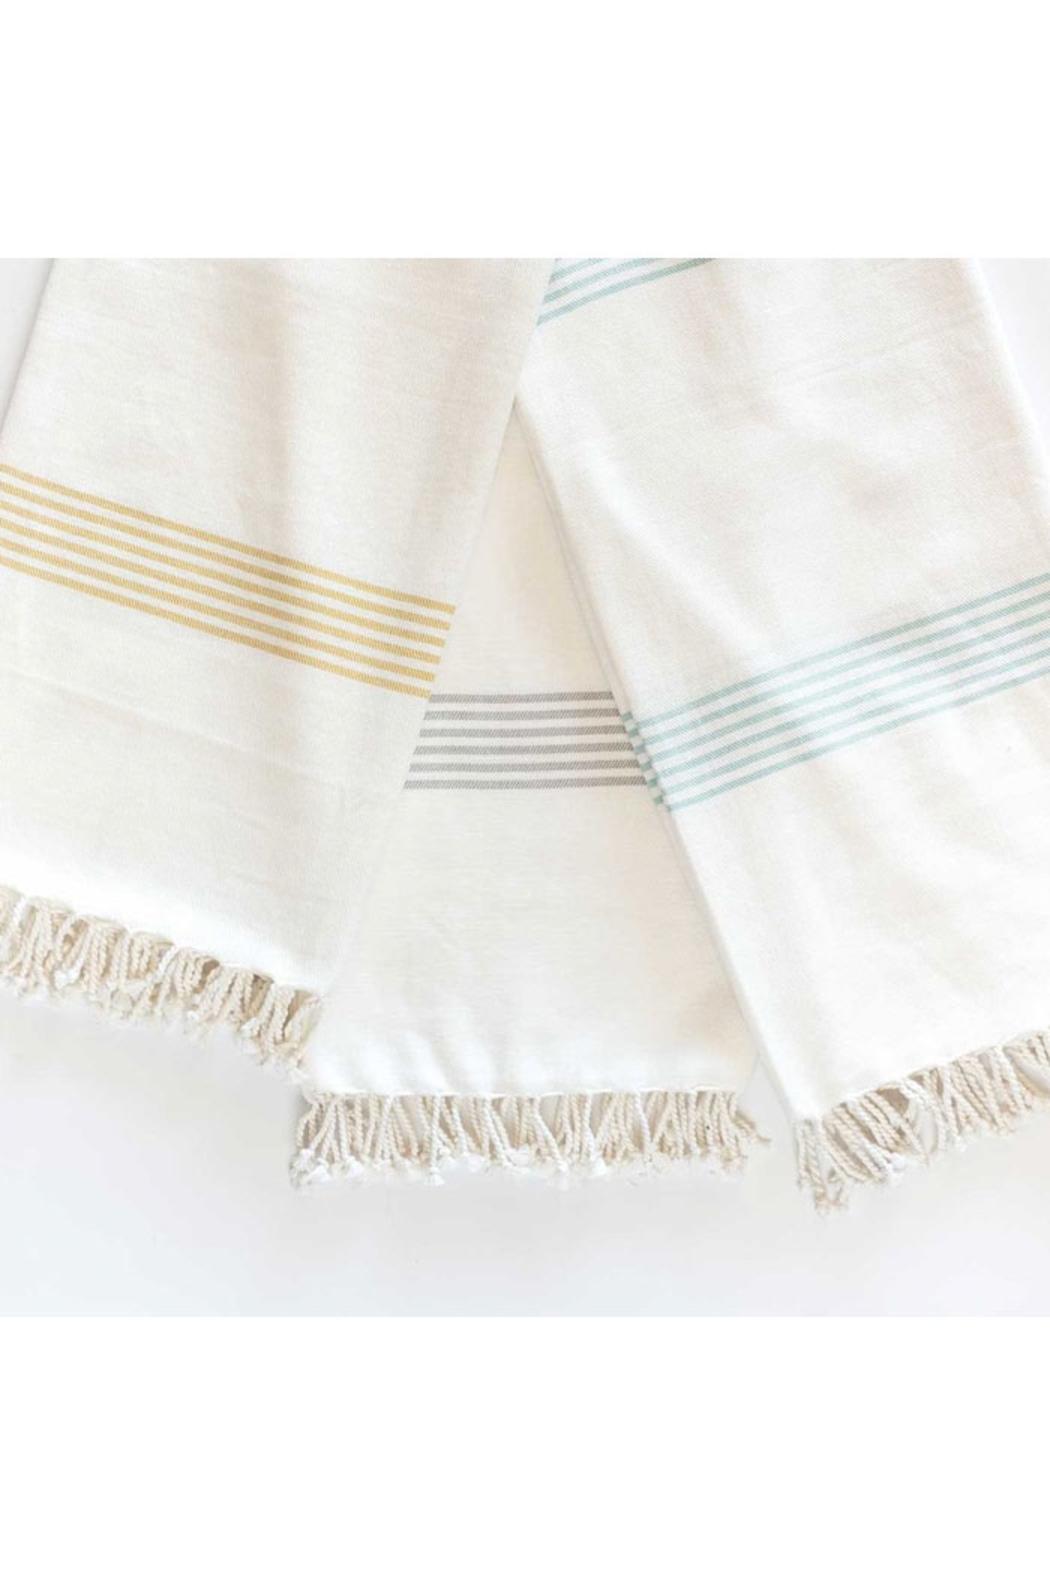 zest Organic Cotton Hudson Throw - Front Cropped Image